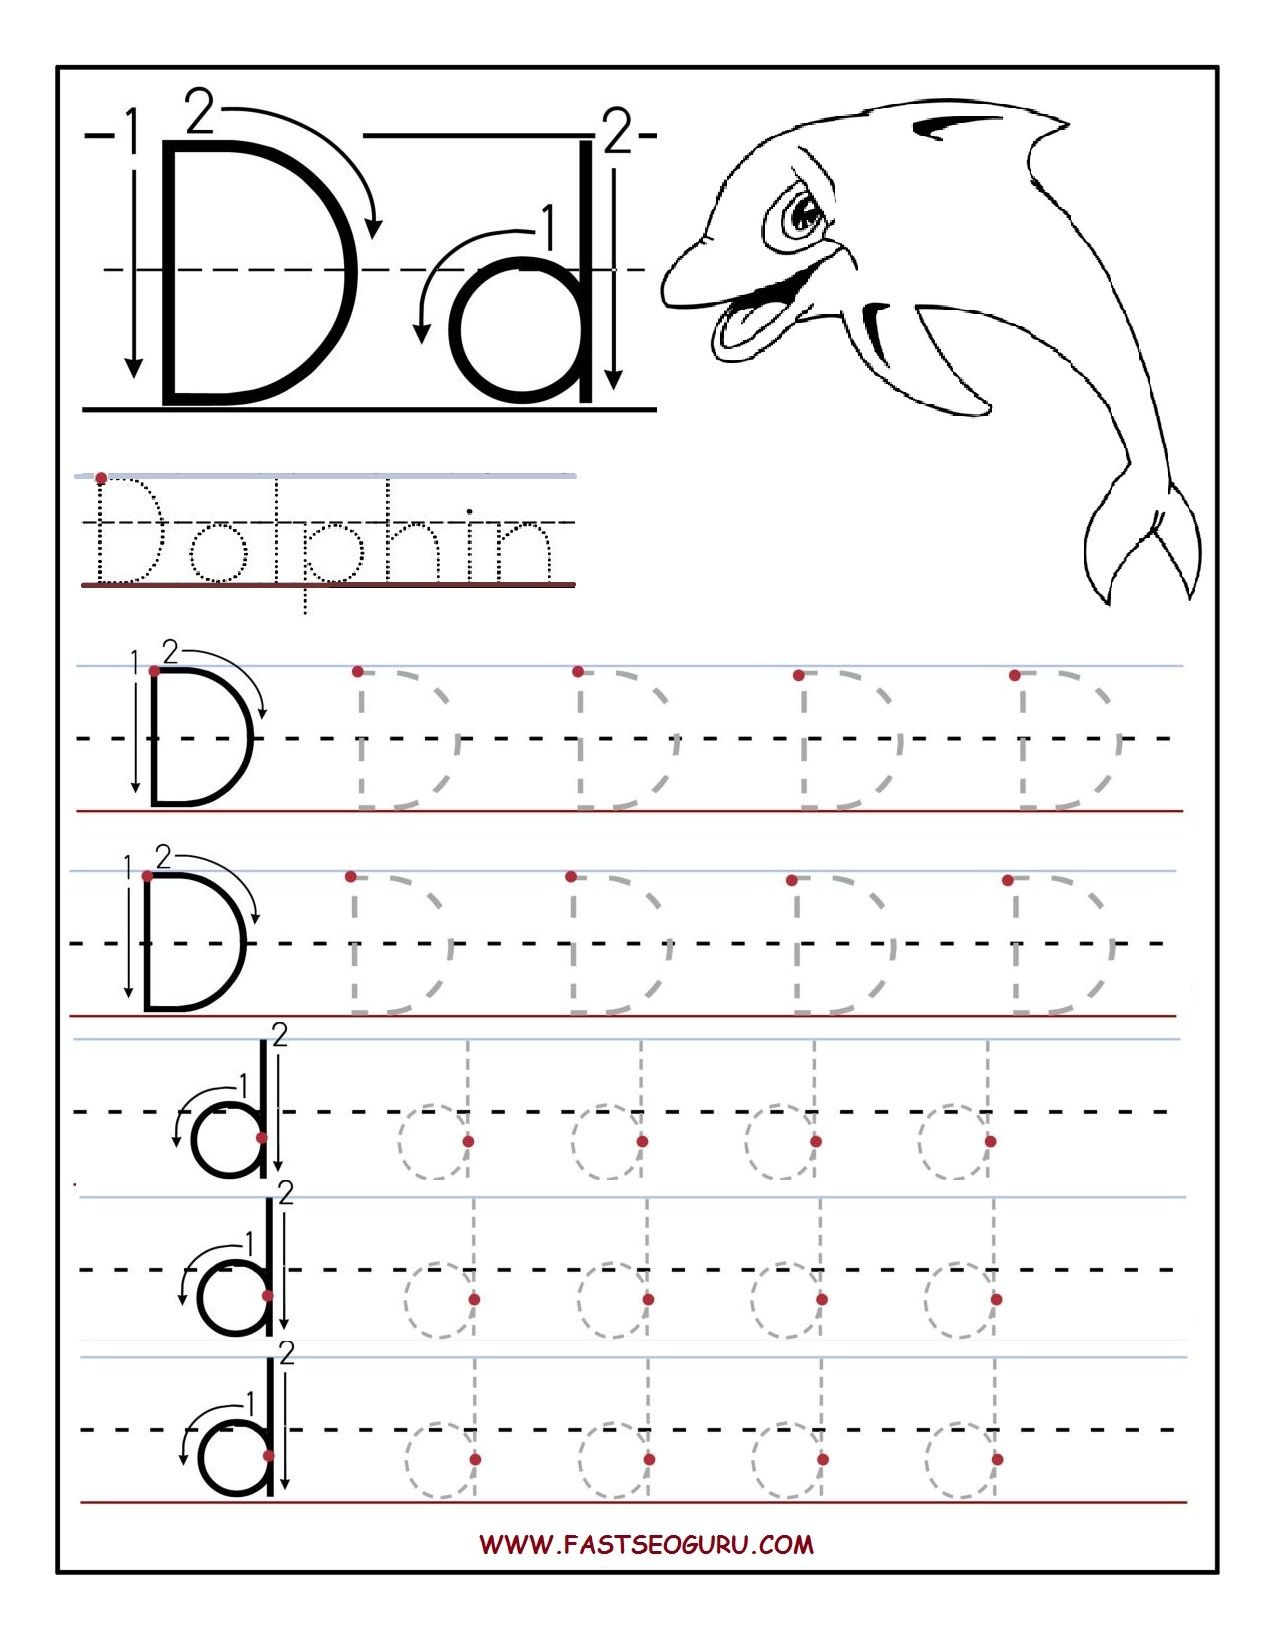 worksheet Pre K Letter Worksheets printable letter d tracing worksheets for preschool pre k work alphabet printables a